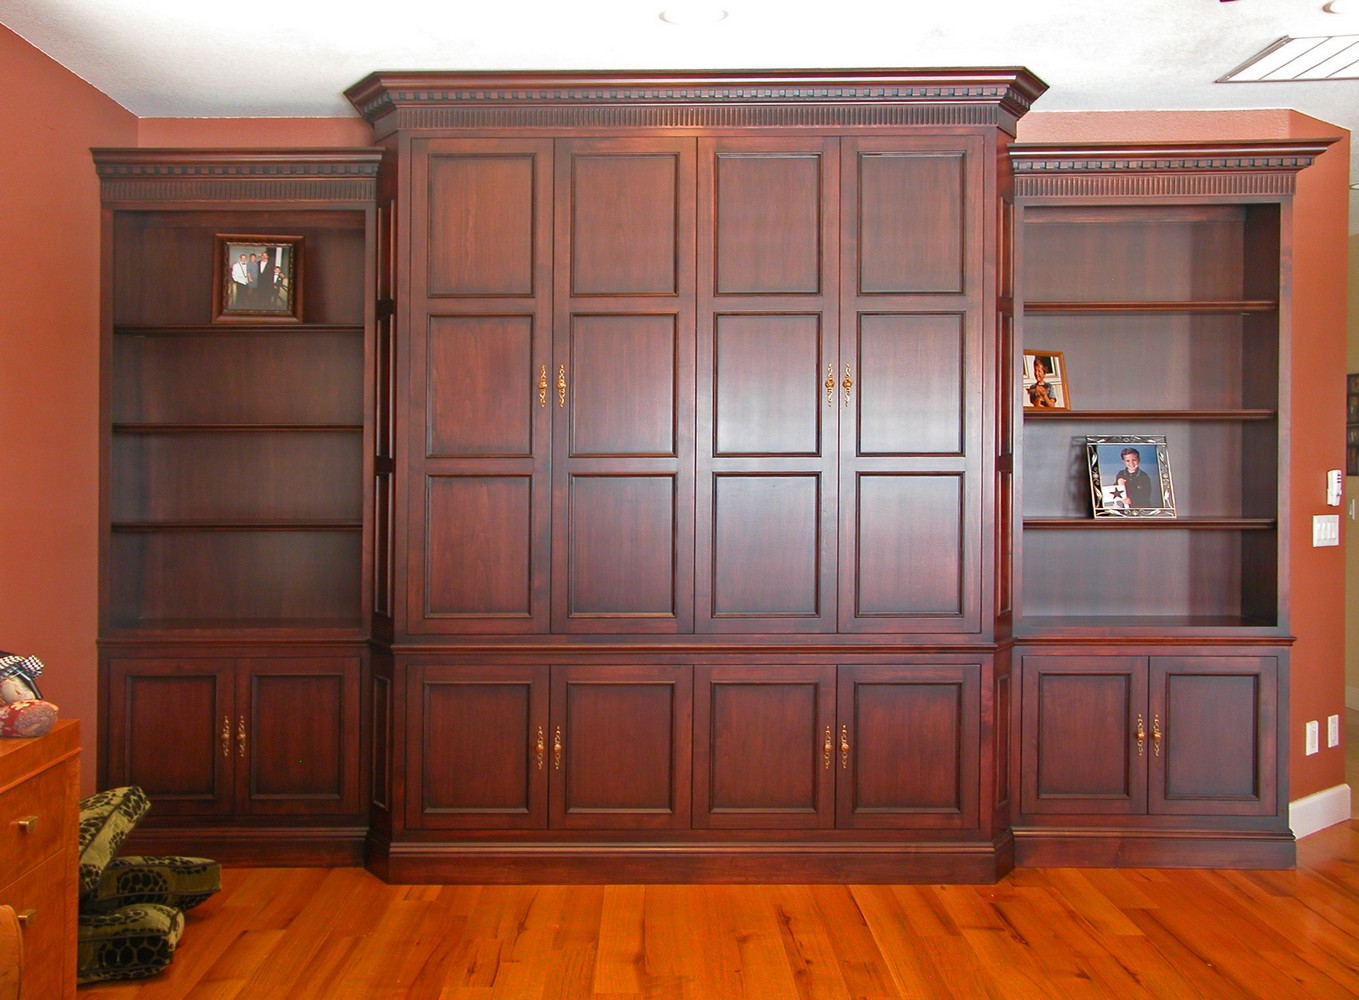 Kitchen cabinets pocket doors - Mahogany Tv Cabinet Bookshelf Bi Fold Pocket Doors Glazed Shaded Finish